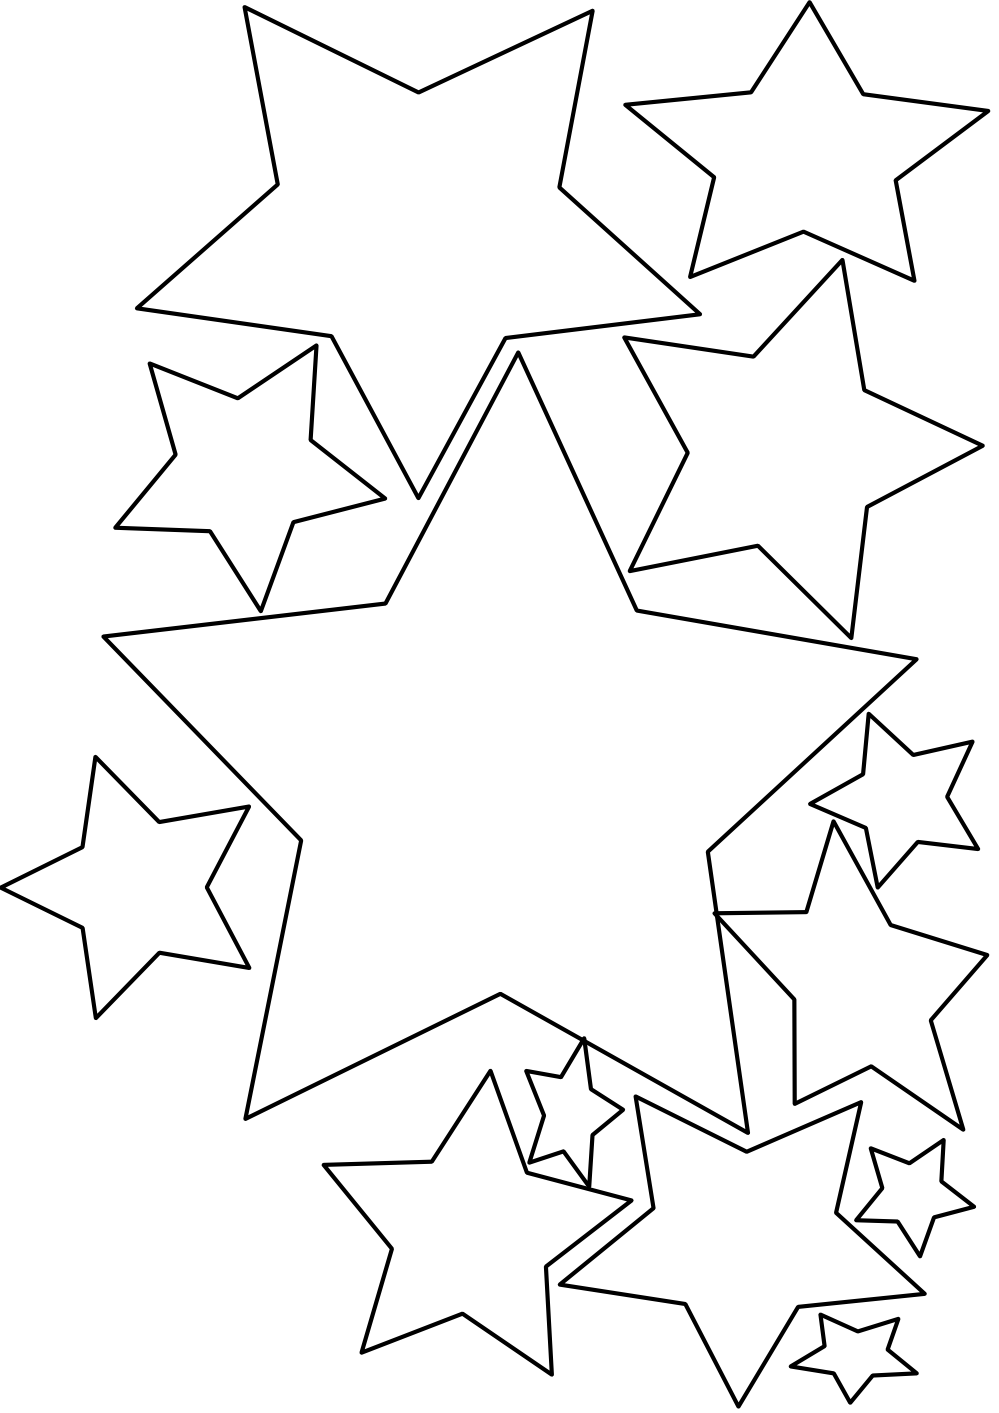 Star lines clipart png freeuse library Christmas Star Clipart Black And White | Clipart Panda - Free ... png freeuse library